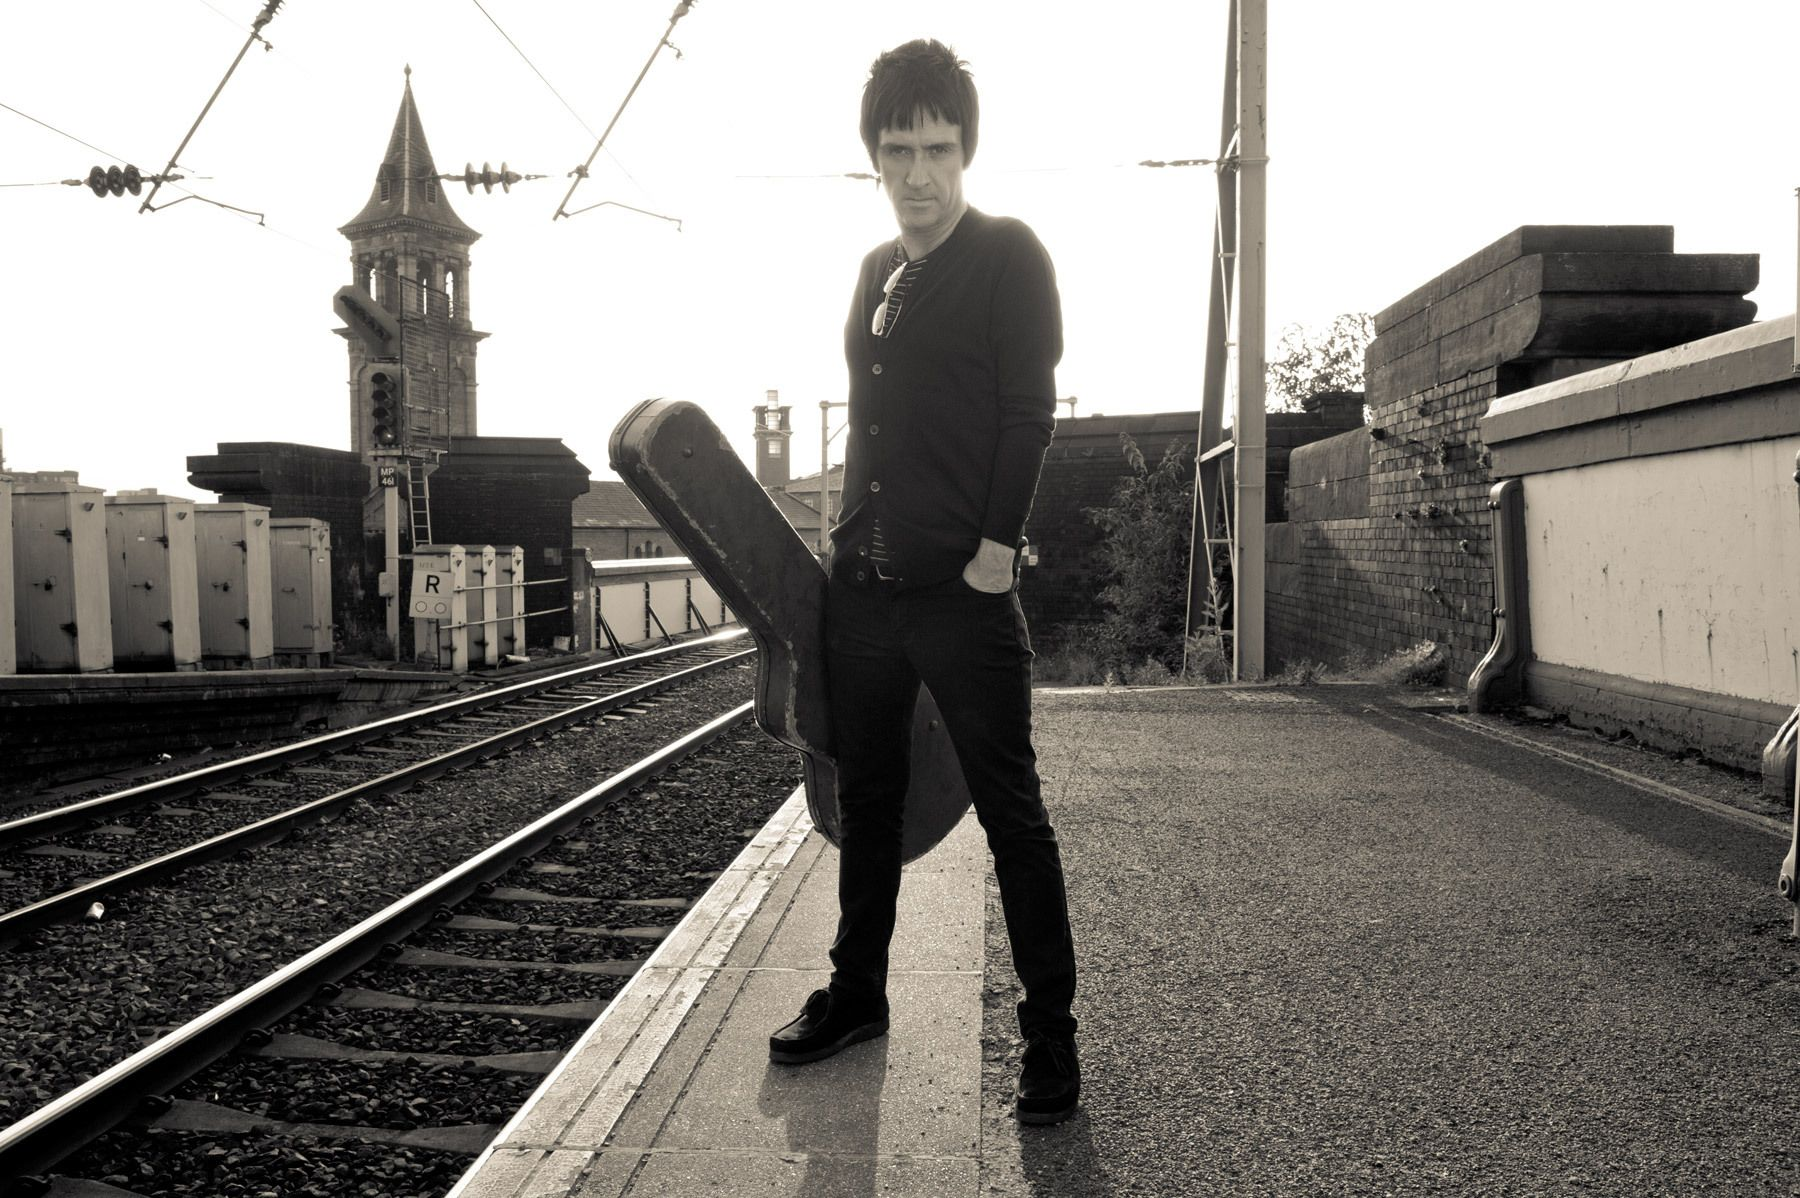 Johnny Marr at the train station in Manchester.